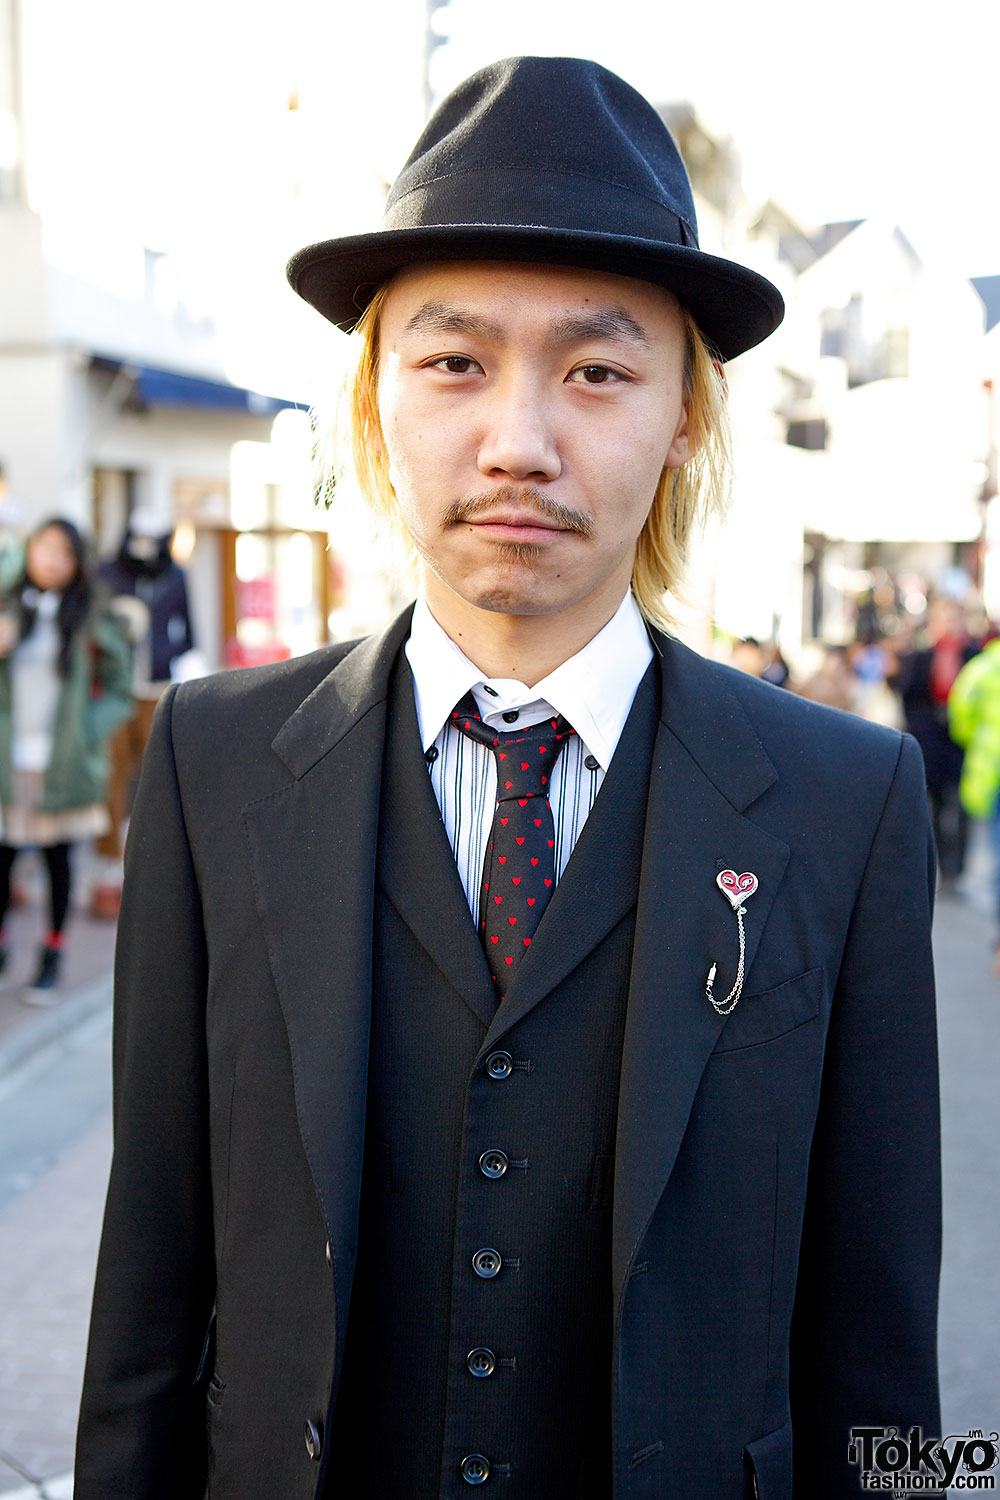 Paul smith suit tokyo fashion news for Paul smith doctor who shirt